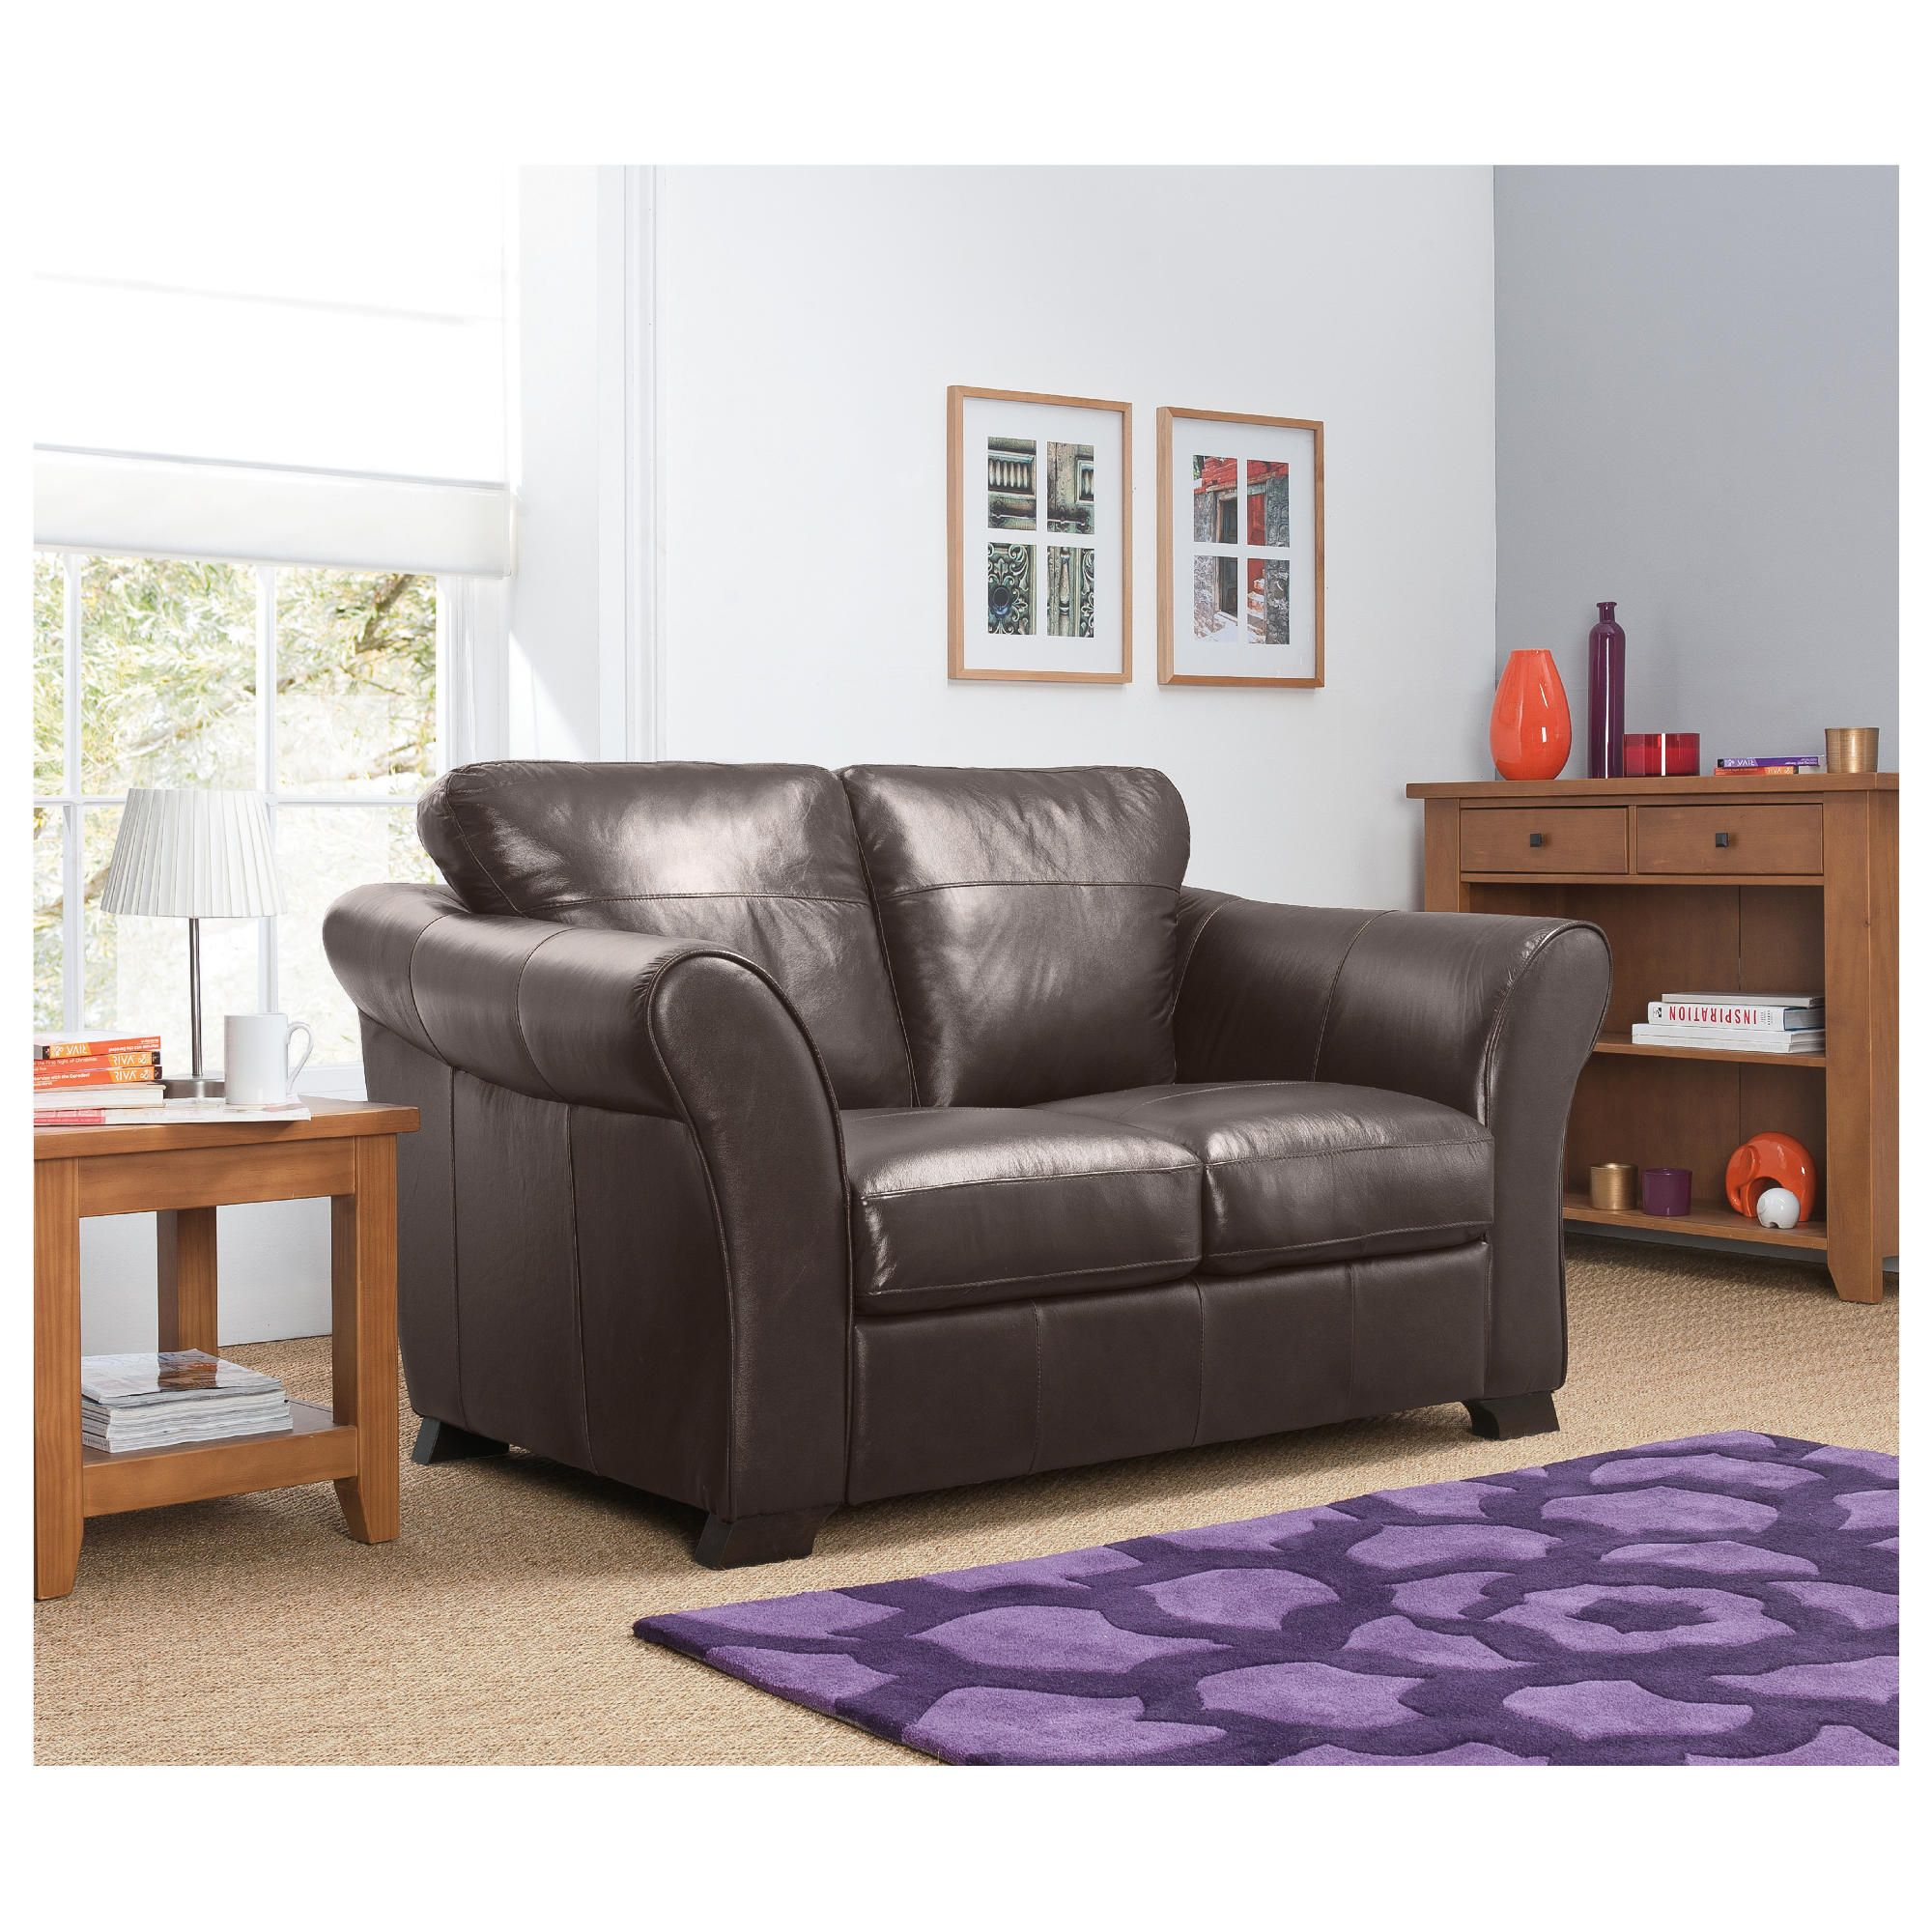 Capri Small Leather Sofa Chocolate at Tesco Direct